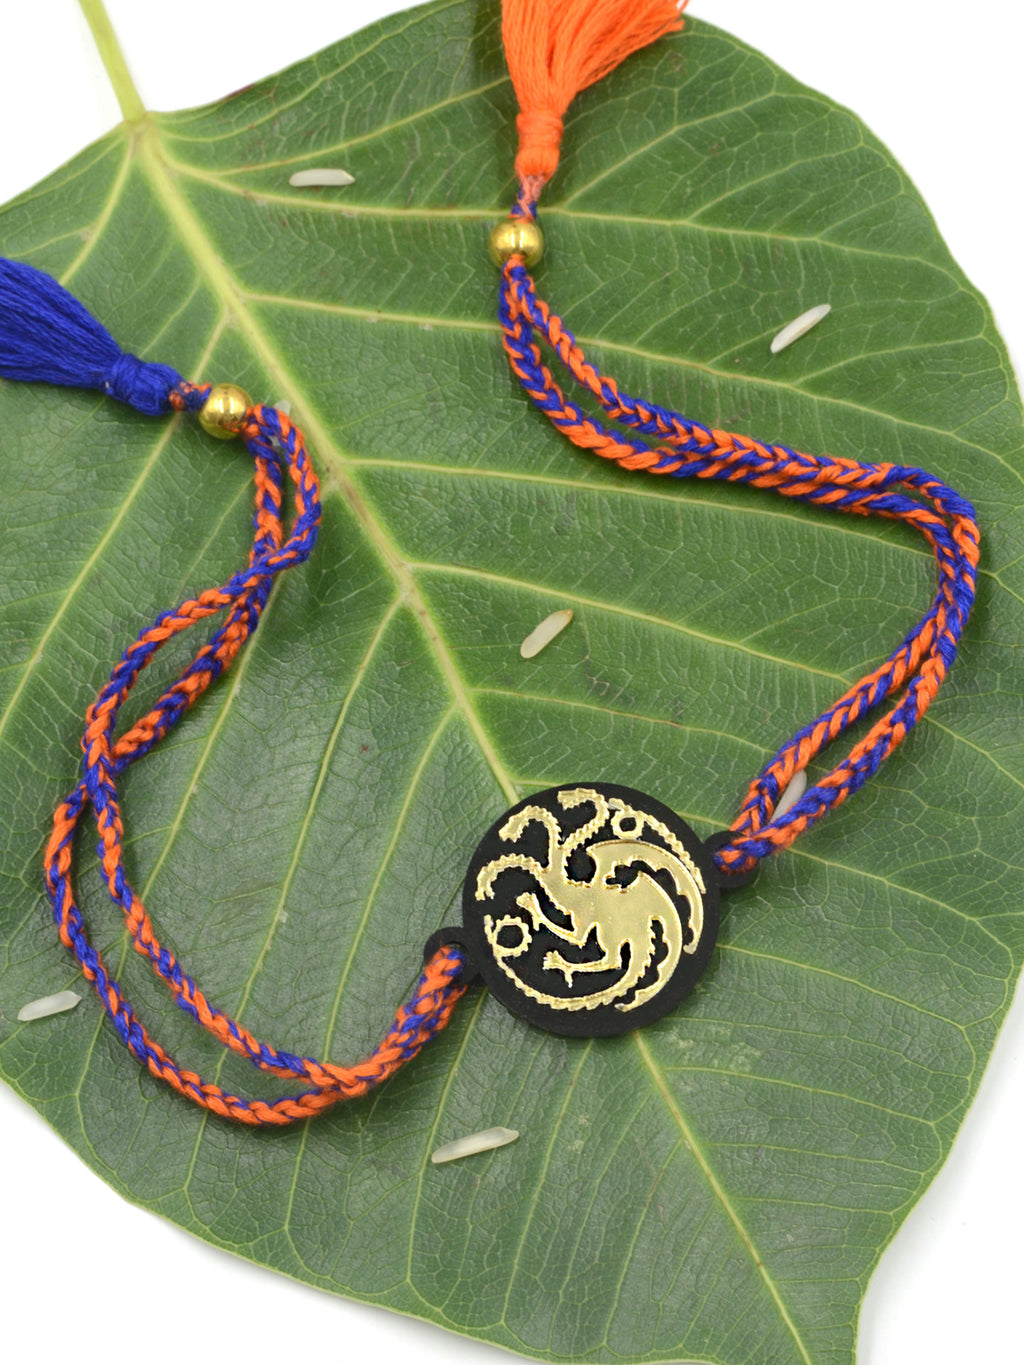 Targaryen (Game of Thrones) Rakhi